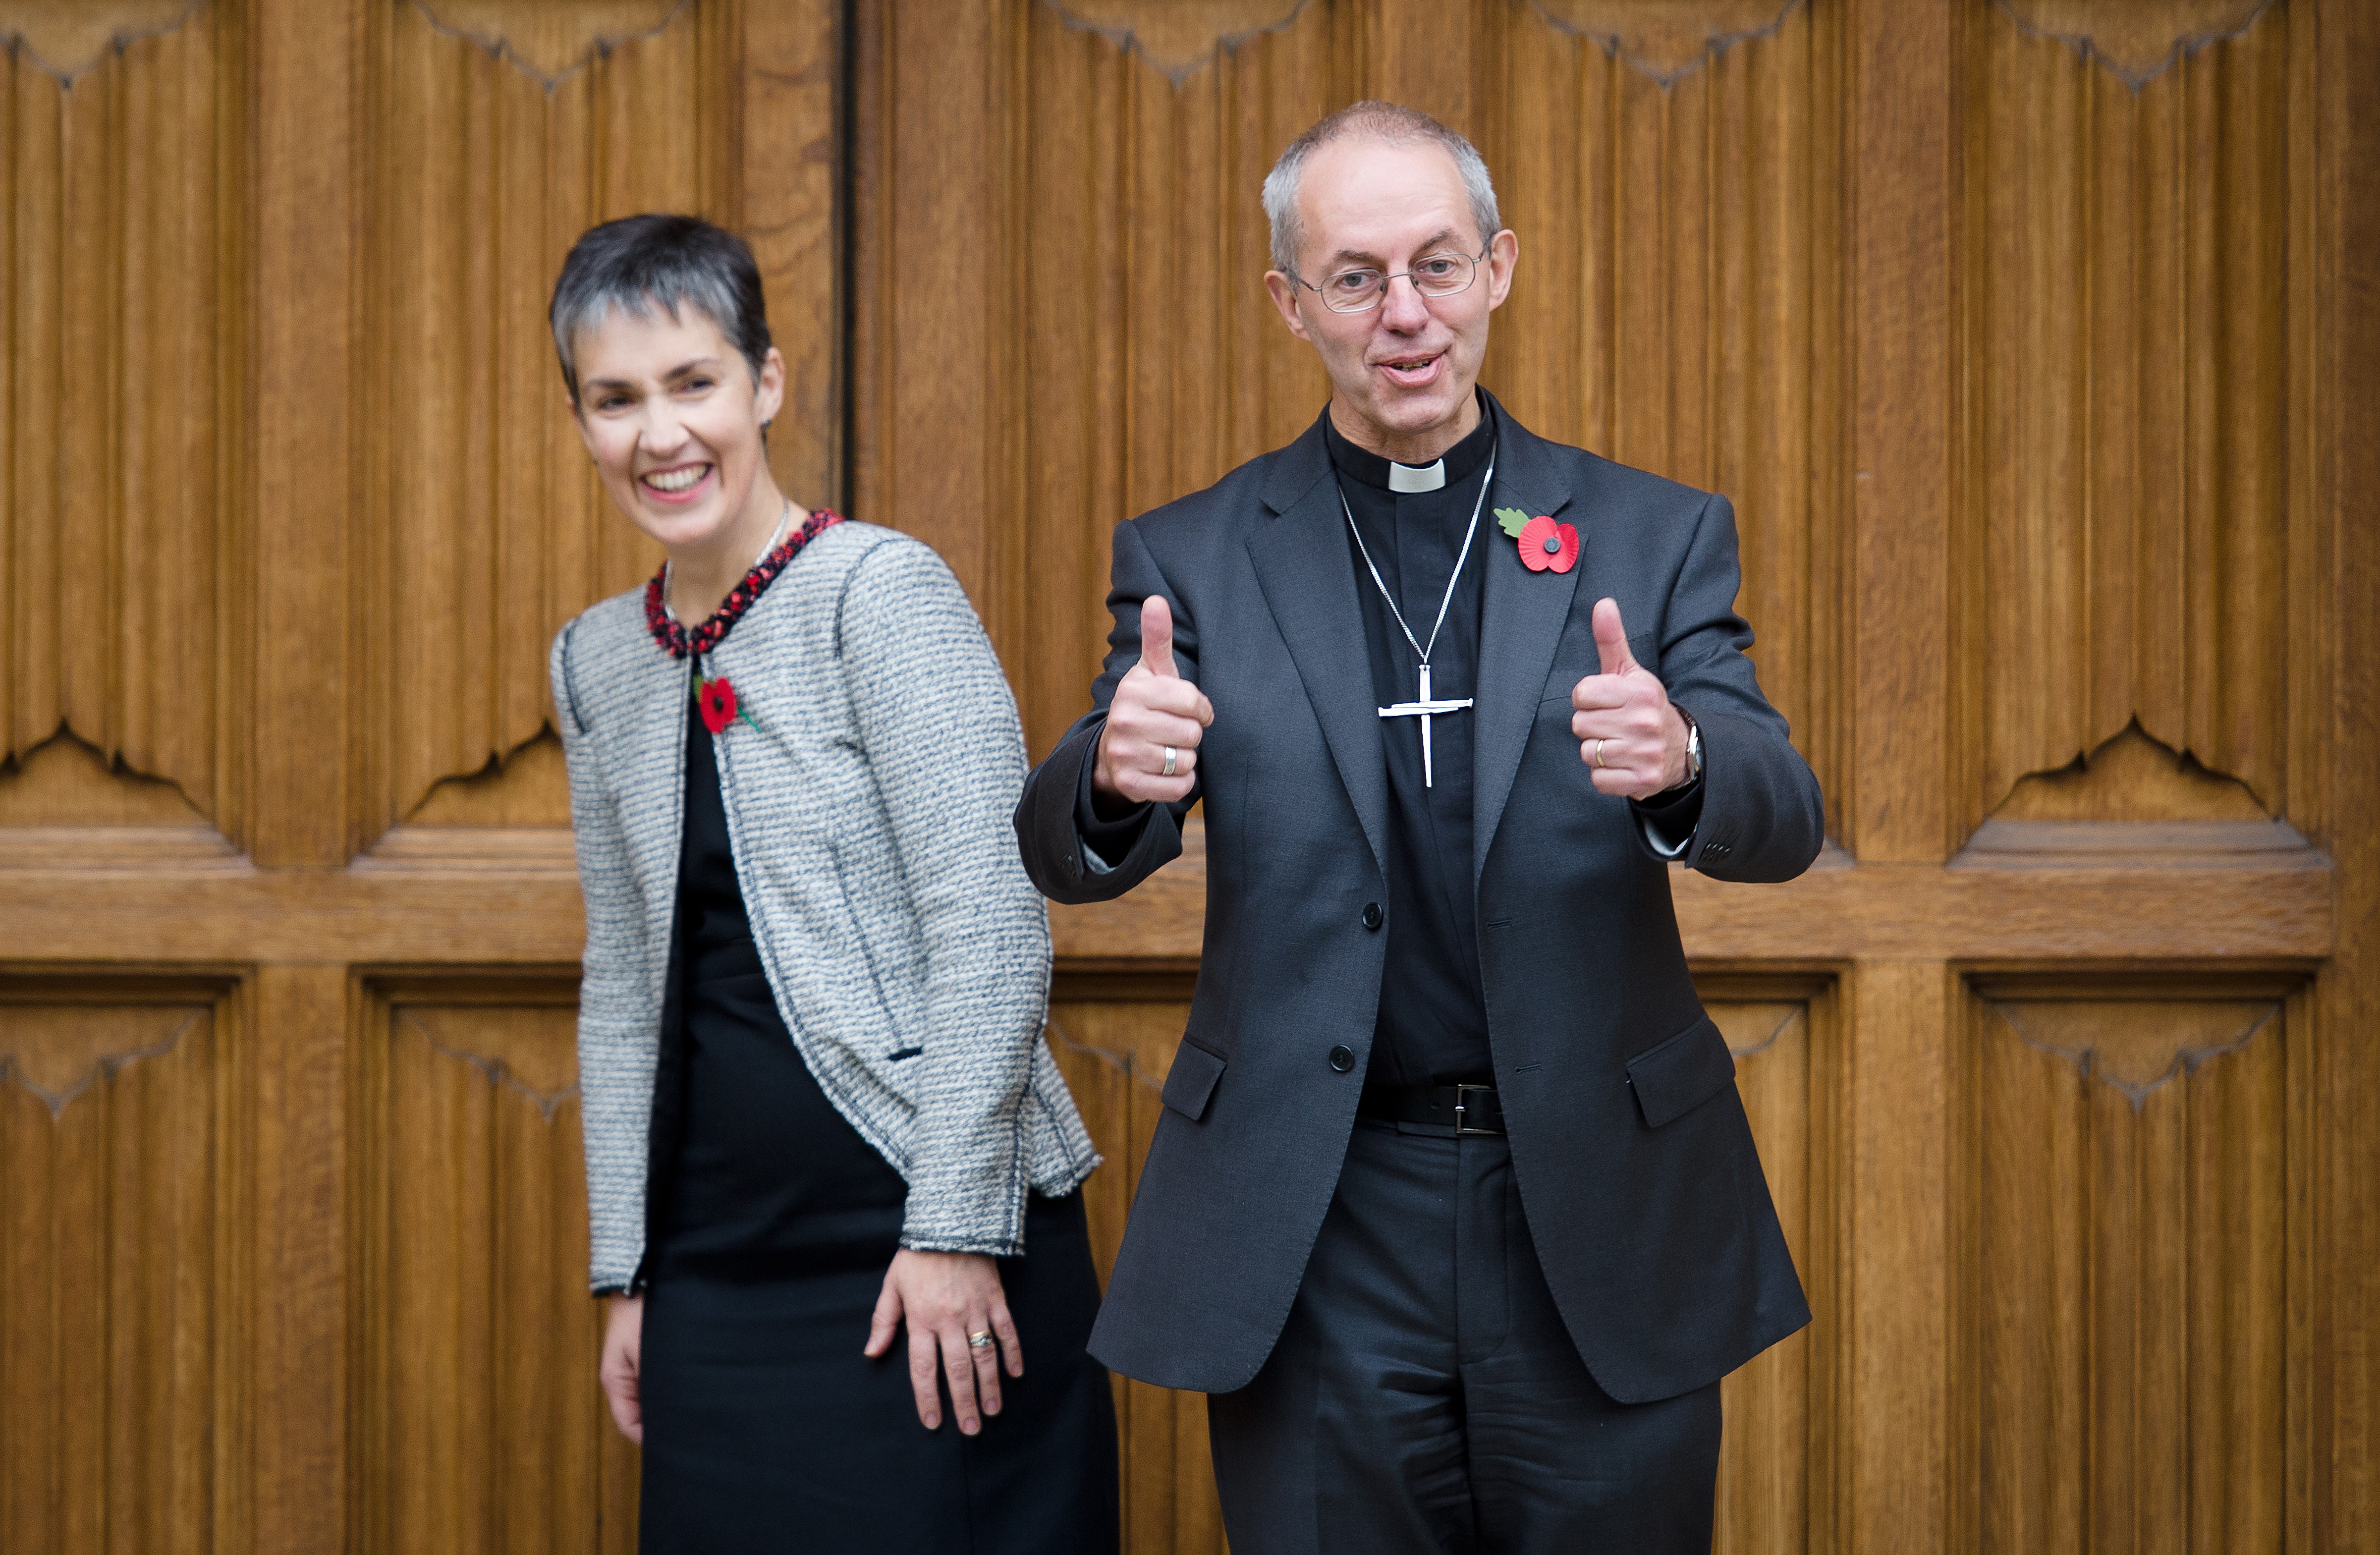 The new Archbishop of Canterbury Justin Welby (R) poses for pictures with his wife Caroline following a press conference in London, on November 9, 2012. (LEON NEAL/AFP/Getty Images)